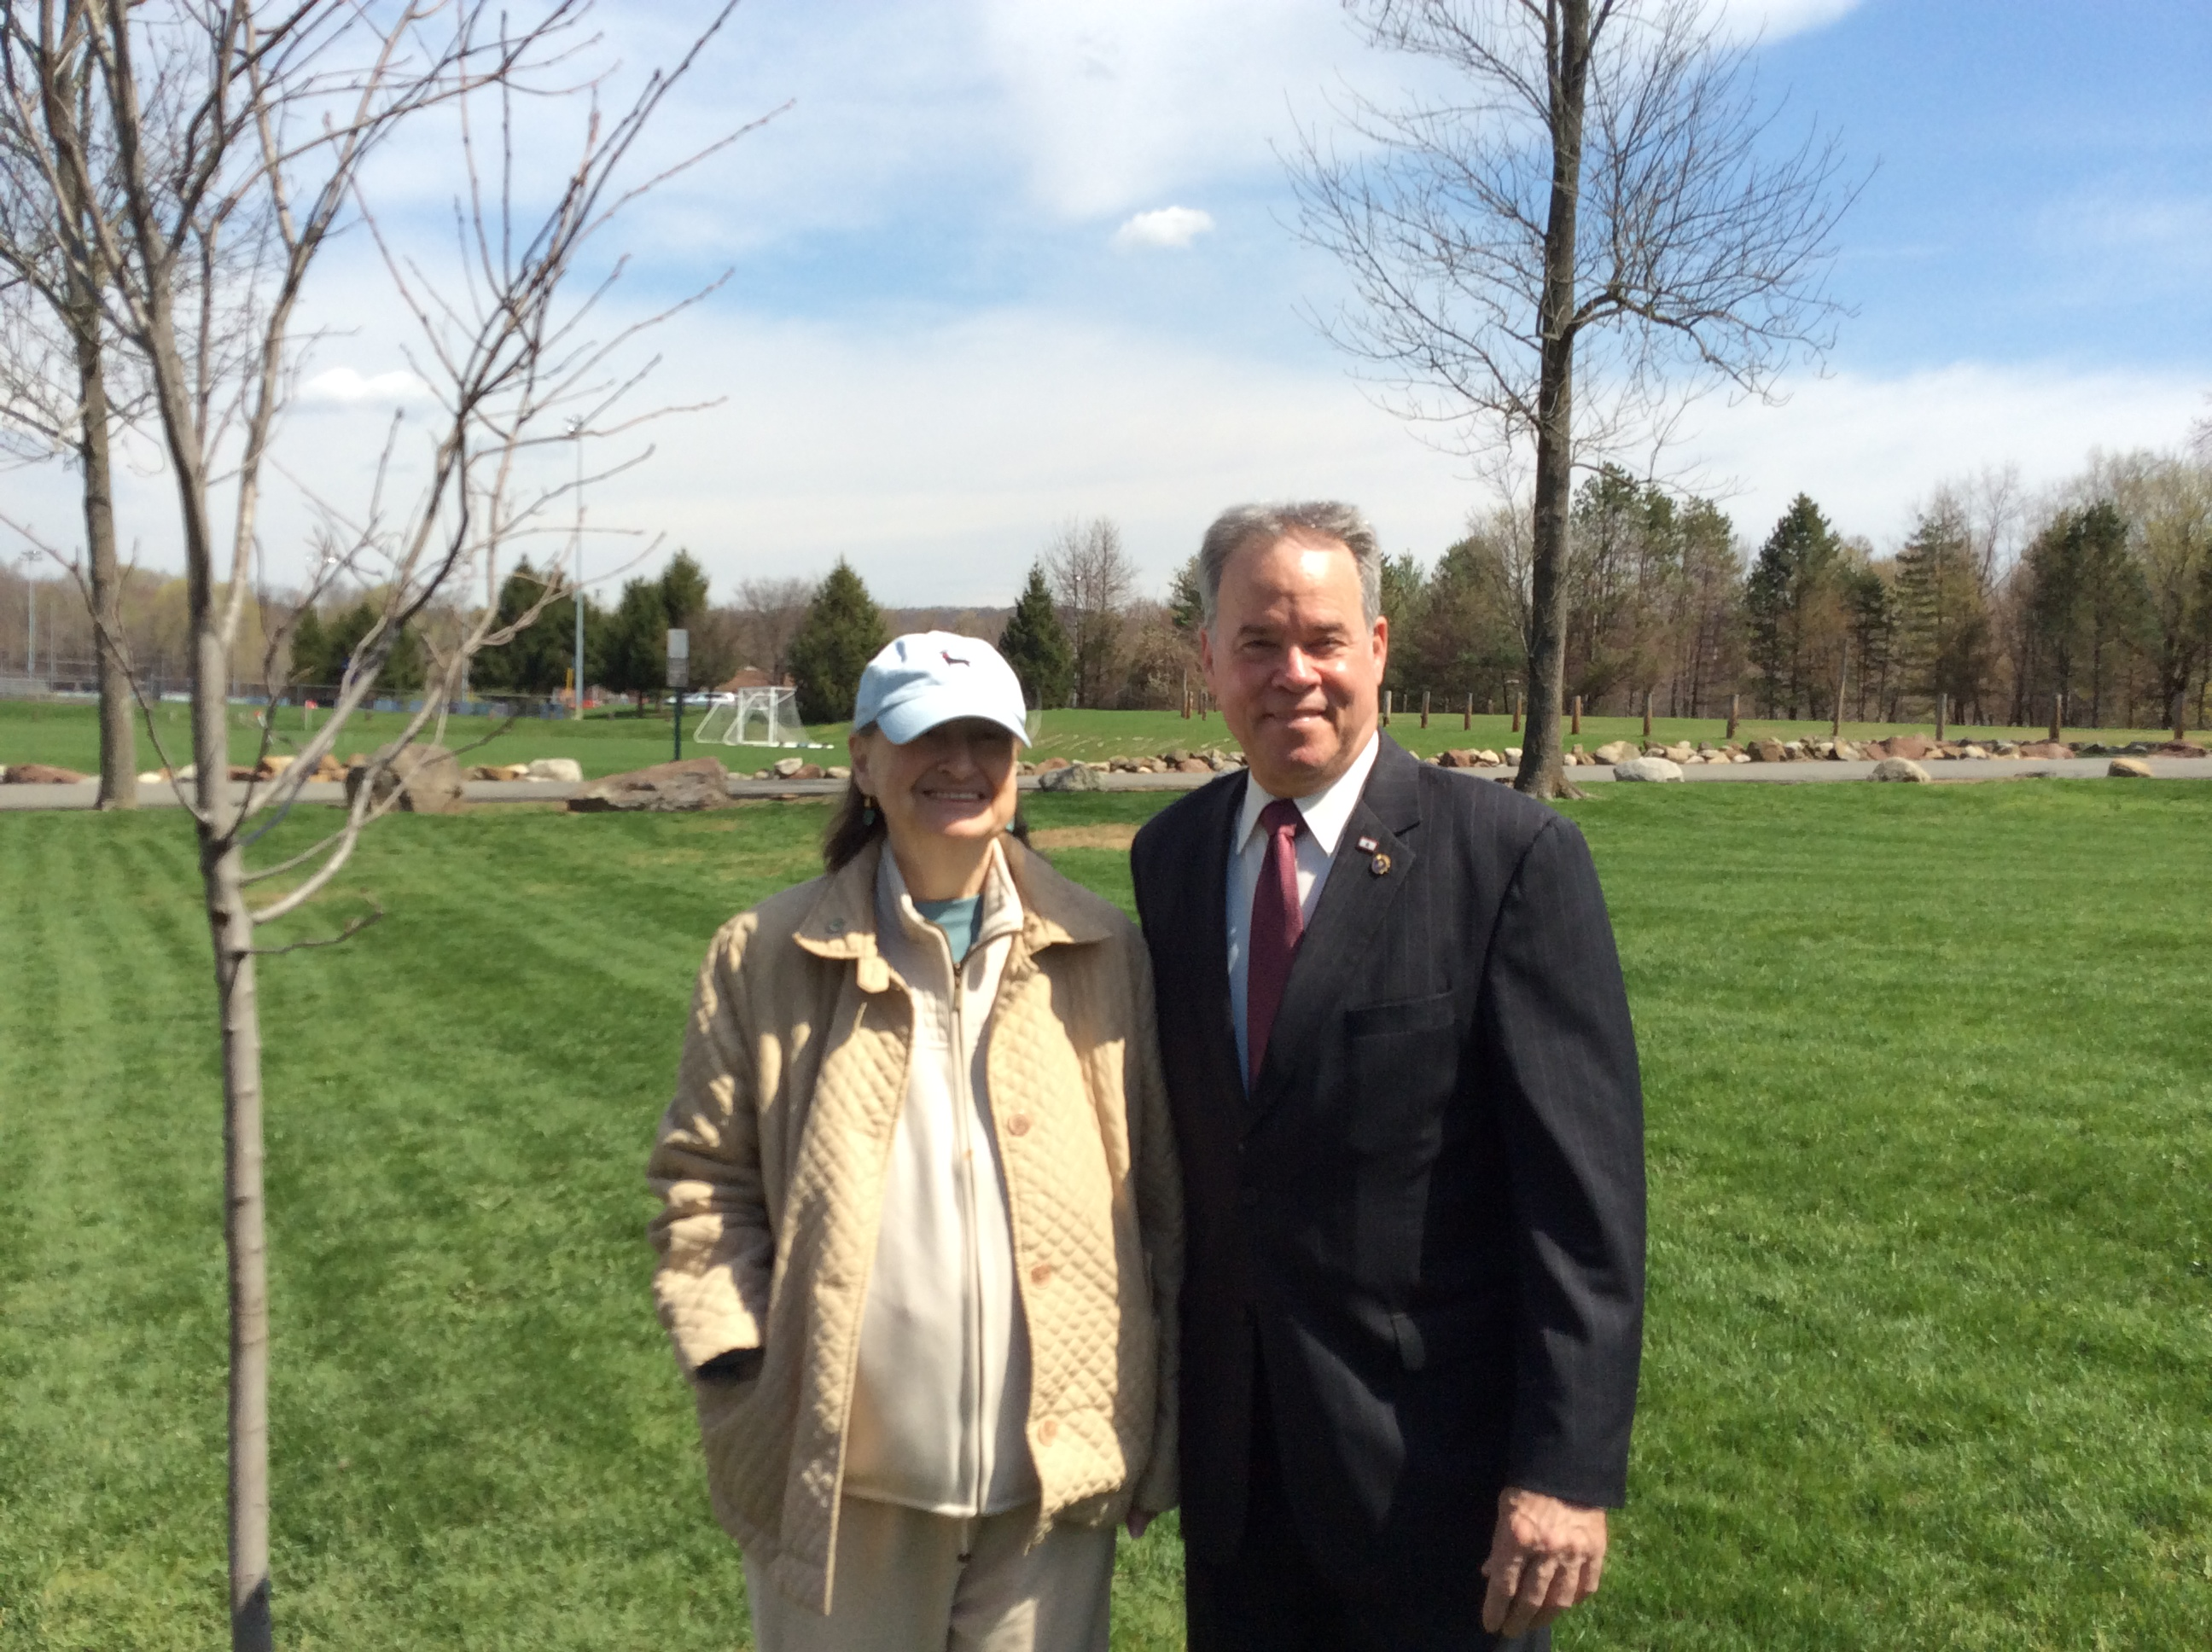 Meet Rockland County's 2015 Outstanding Environmental Volunteer!